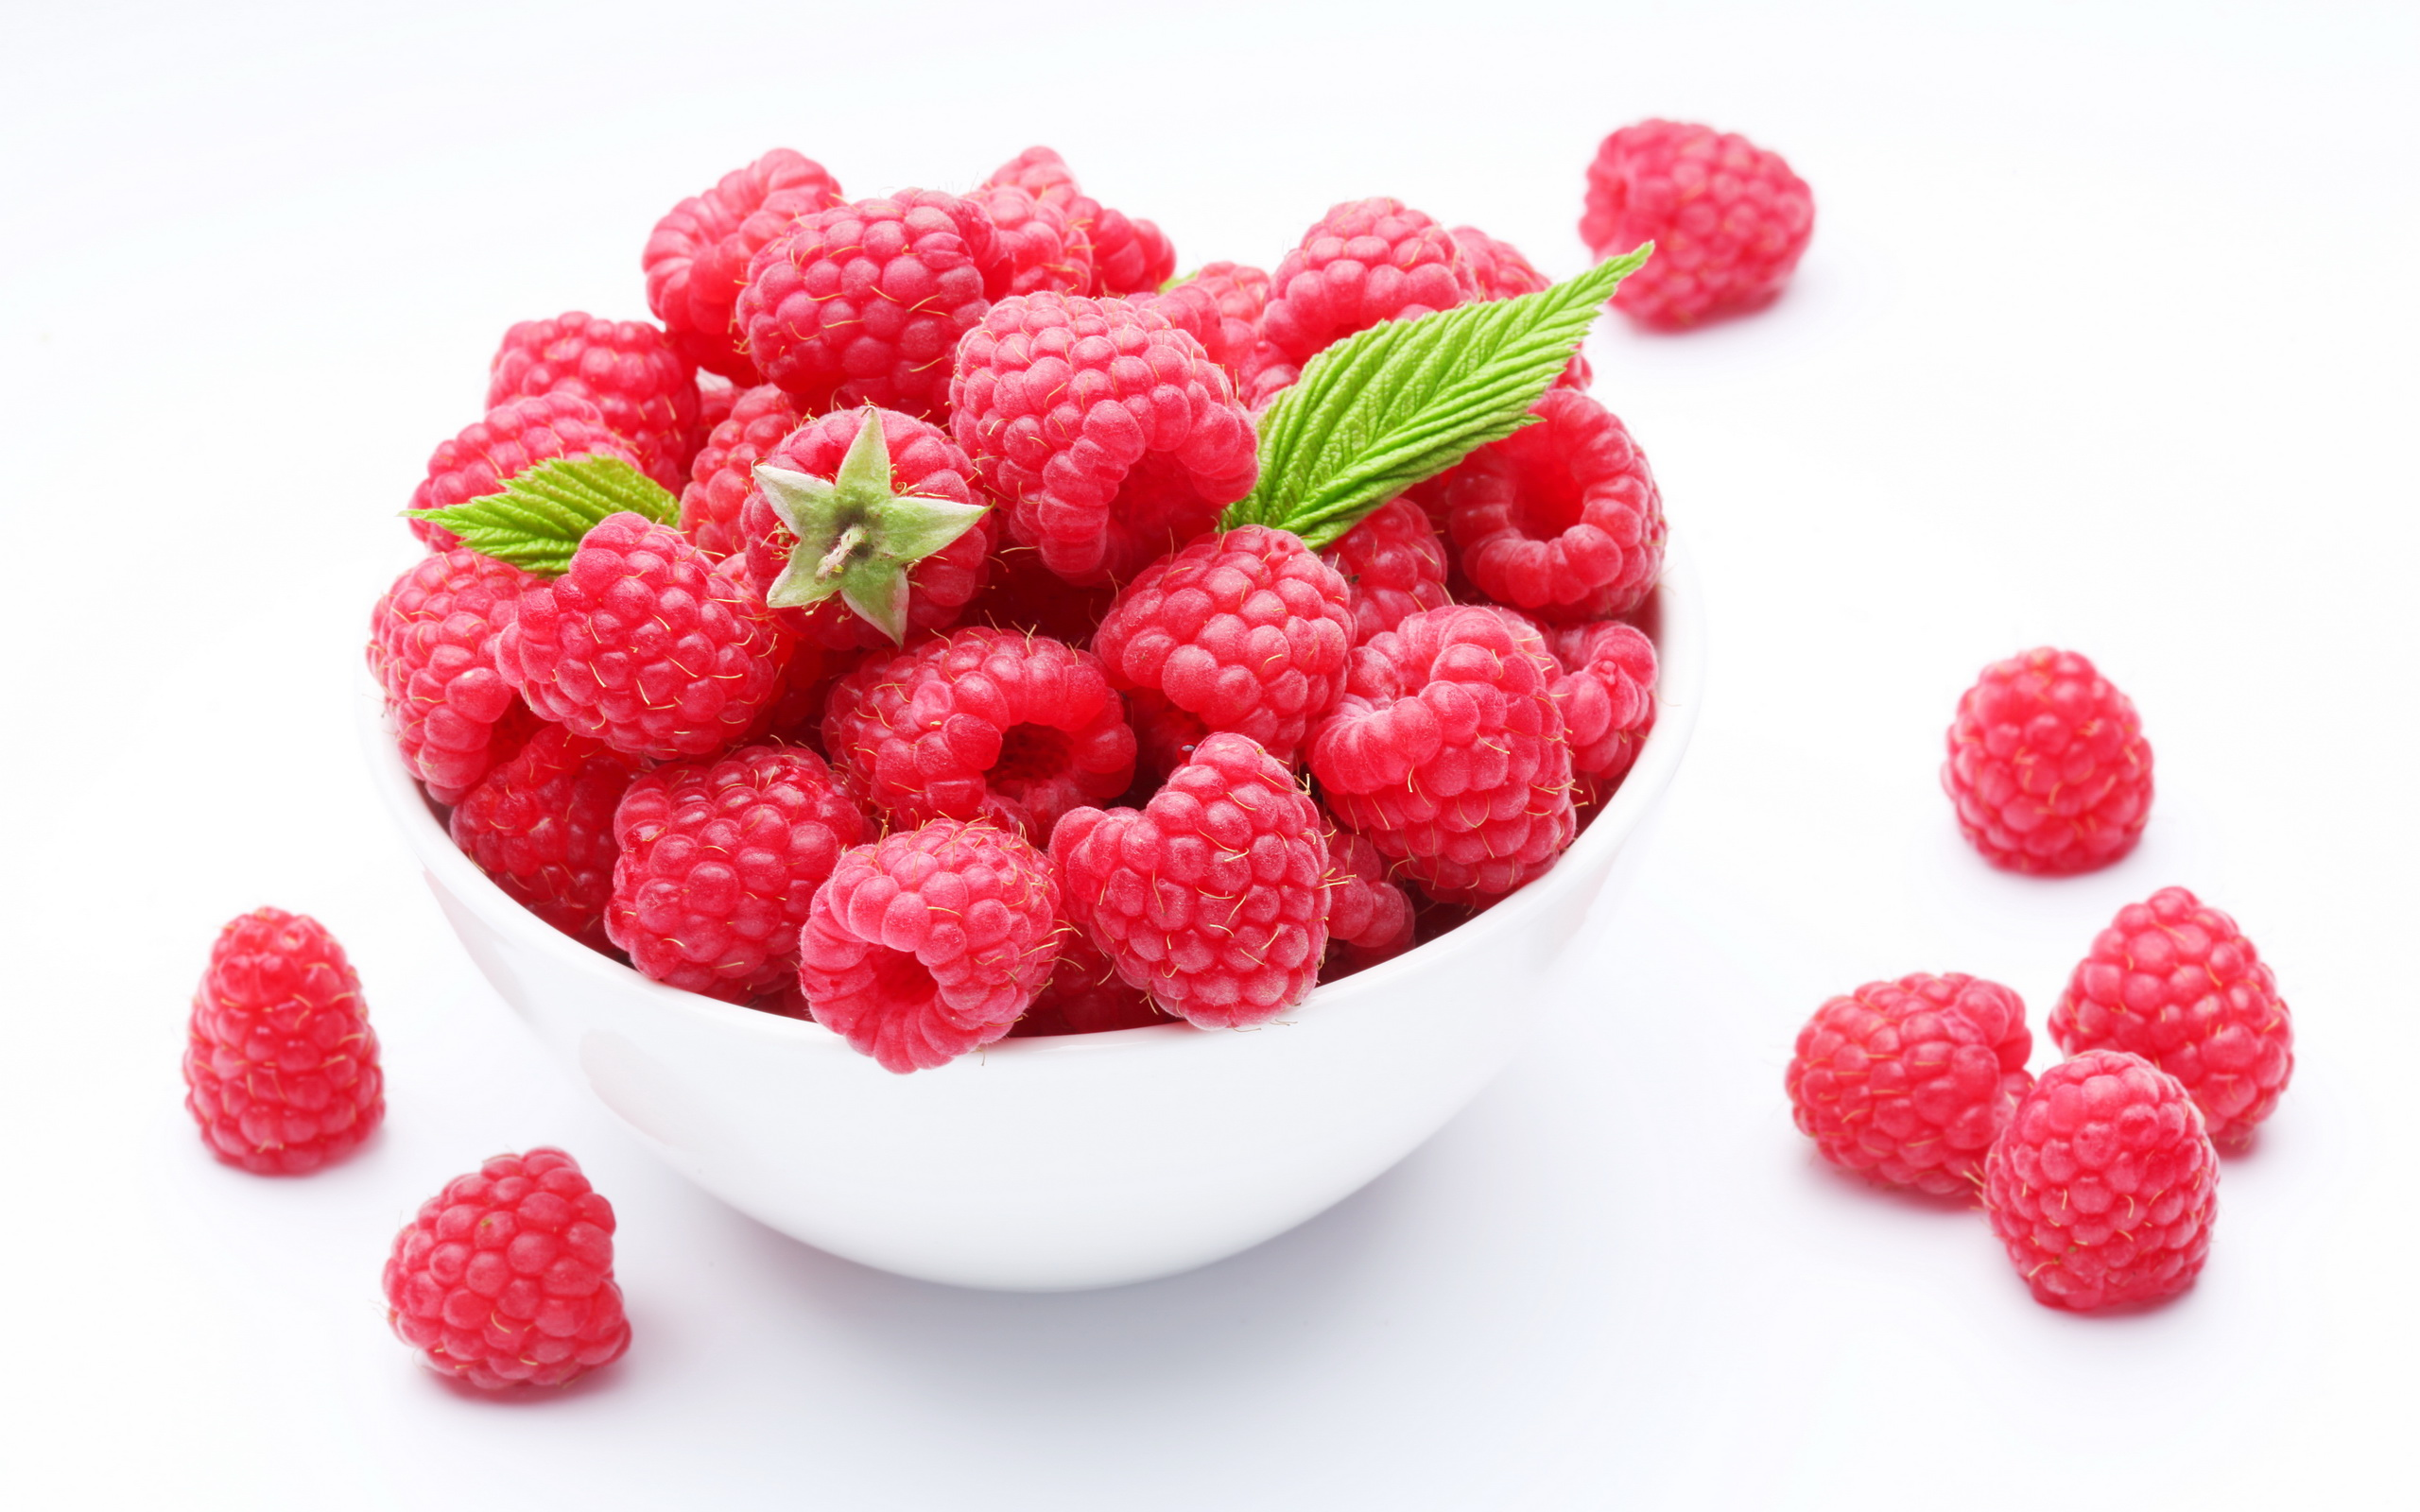 Fresh Raspberries in a Bowl 3017.41 Kb